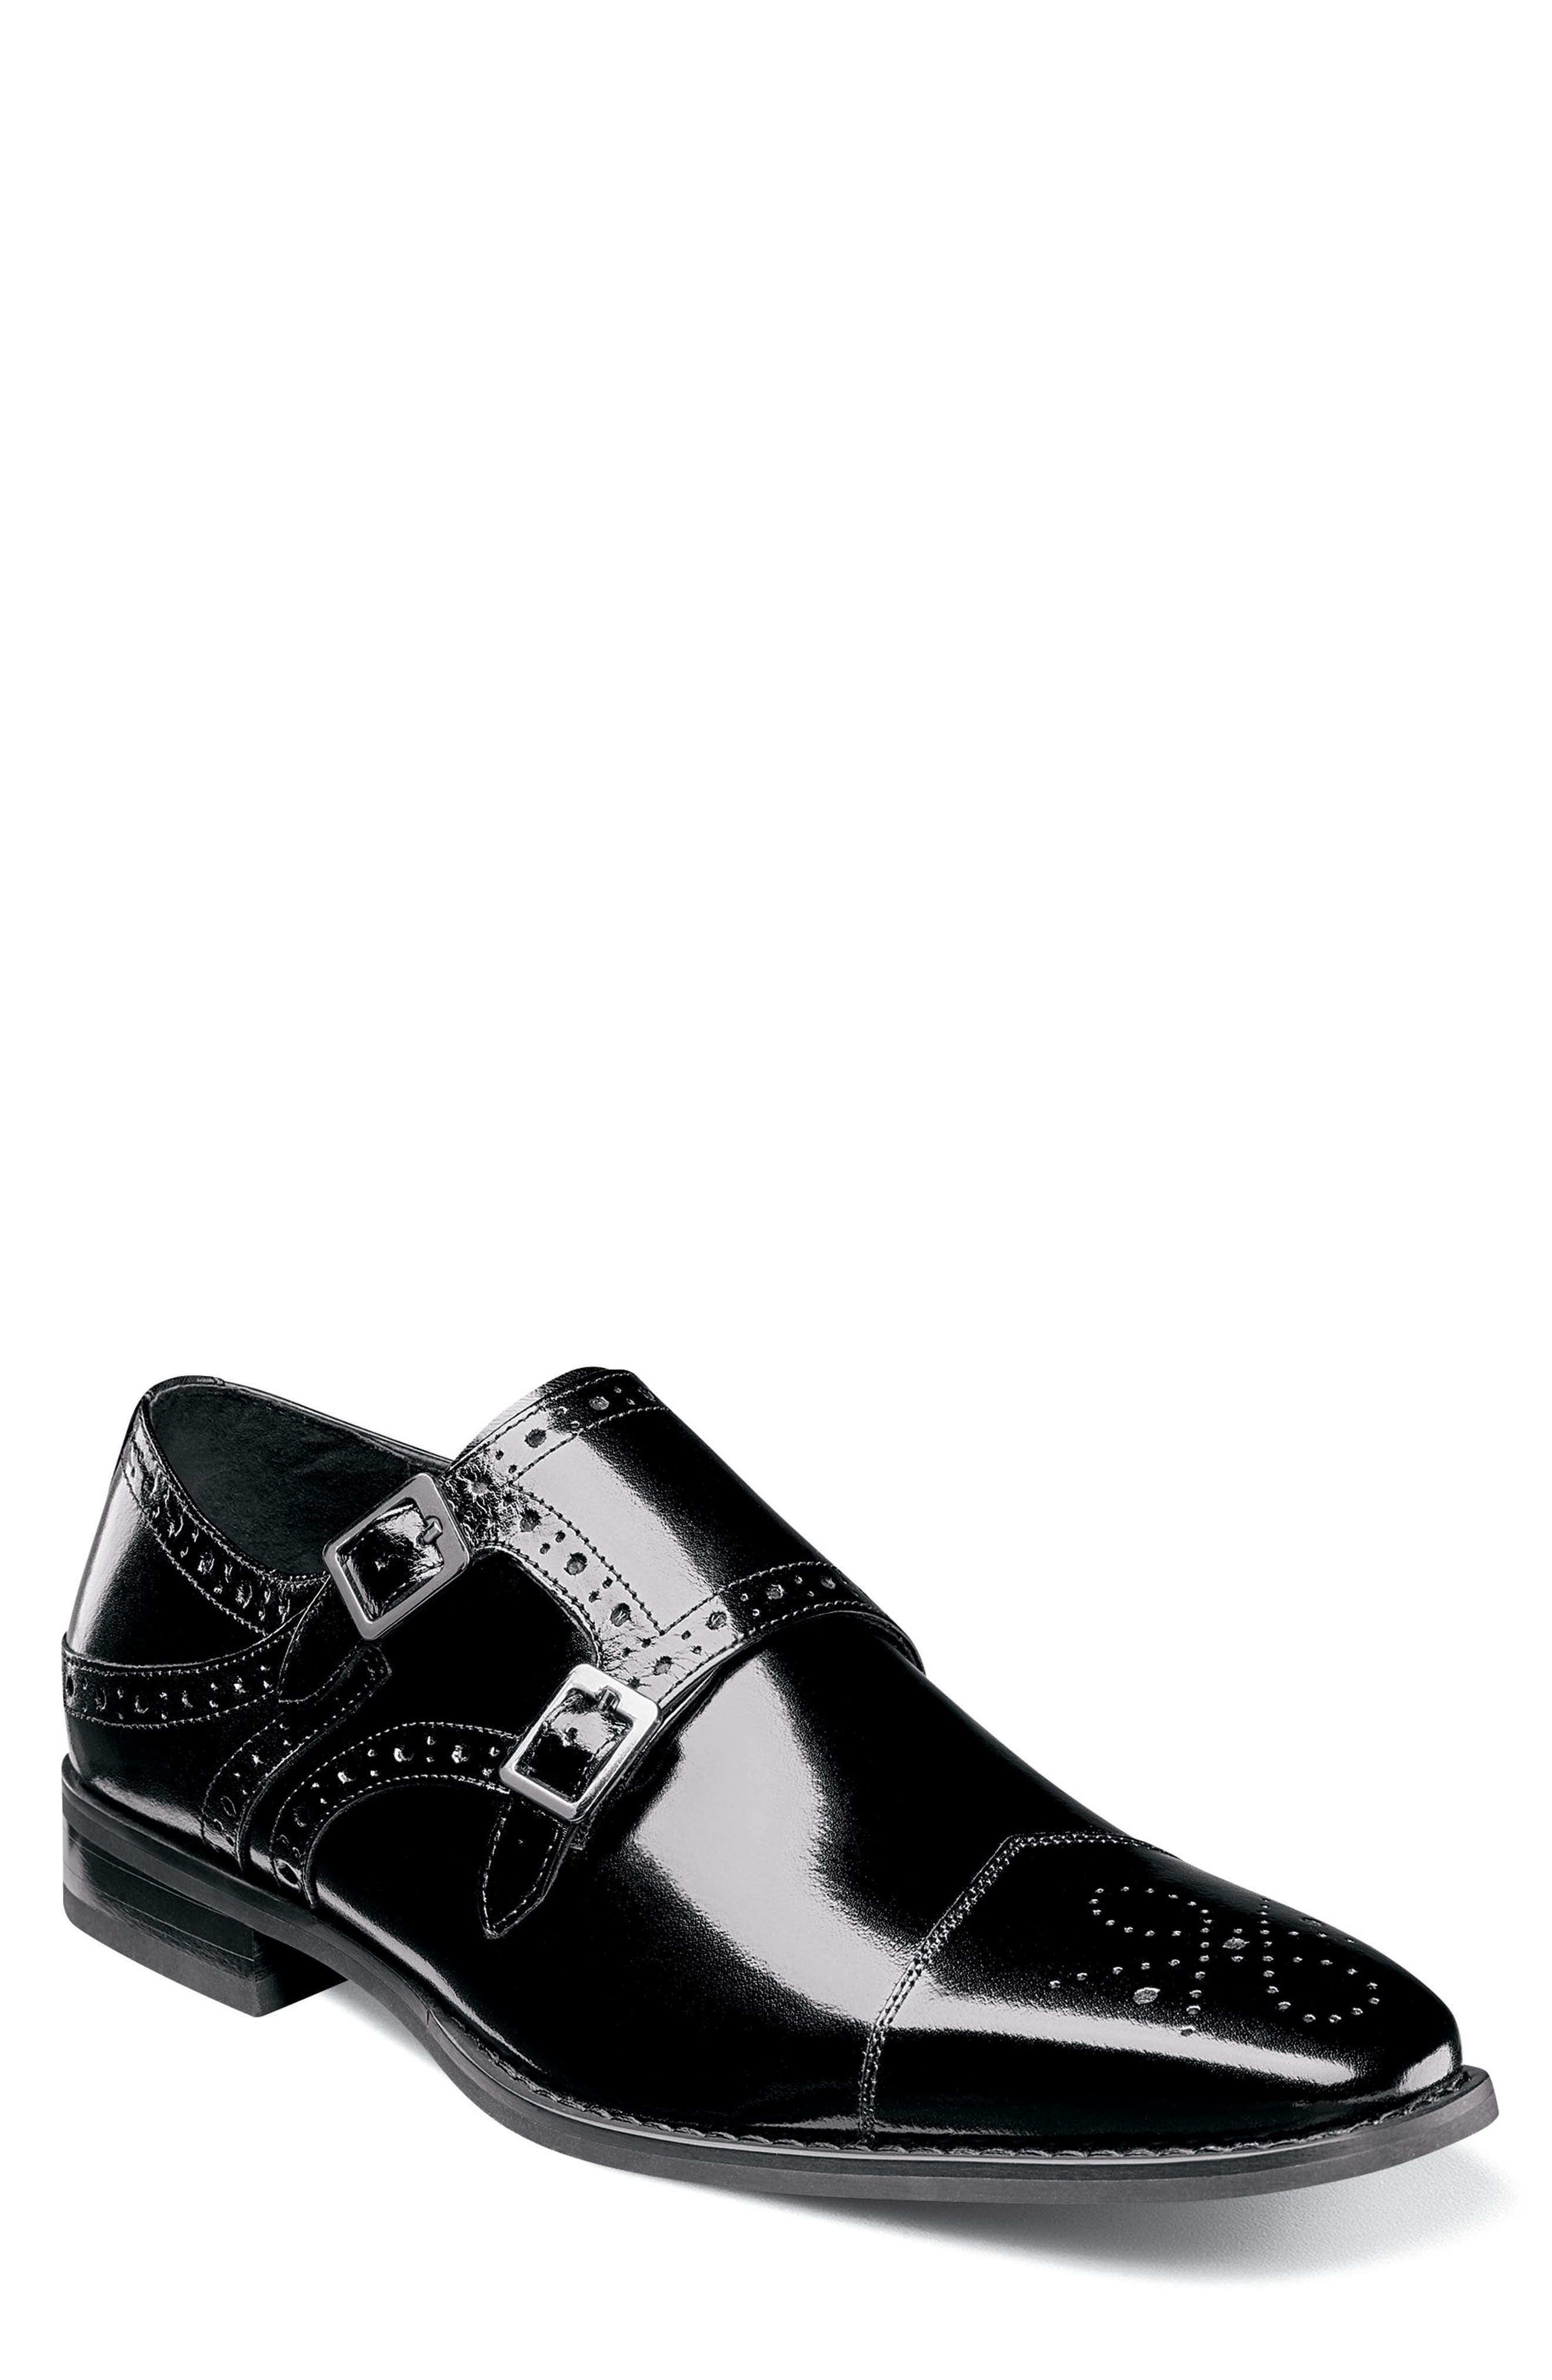 STACY ADAMS, Tayton Cap Toe Double Strap Monk Shoe, Main thumbnail 1, color, BLACK LEATHER